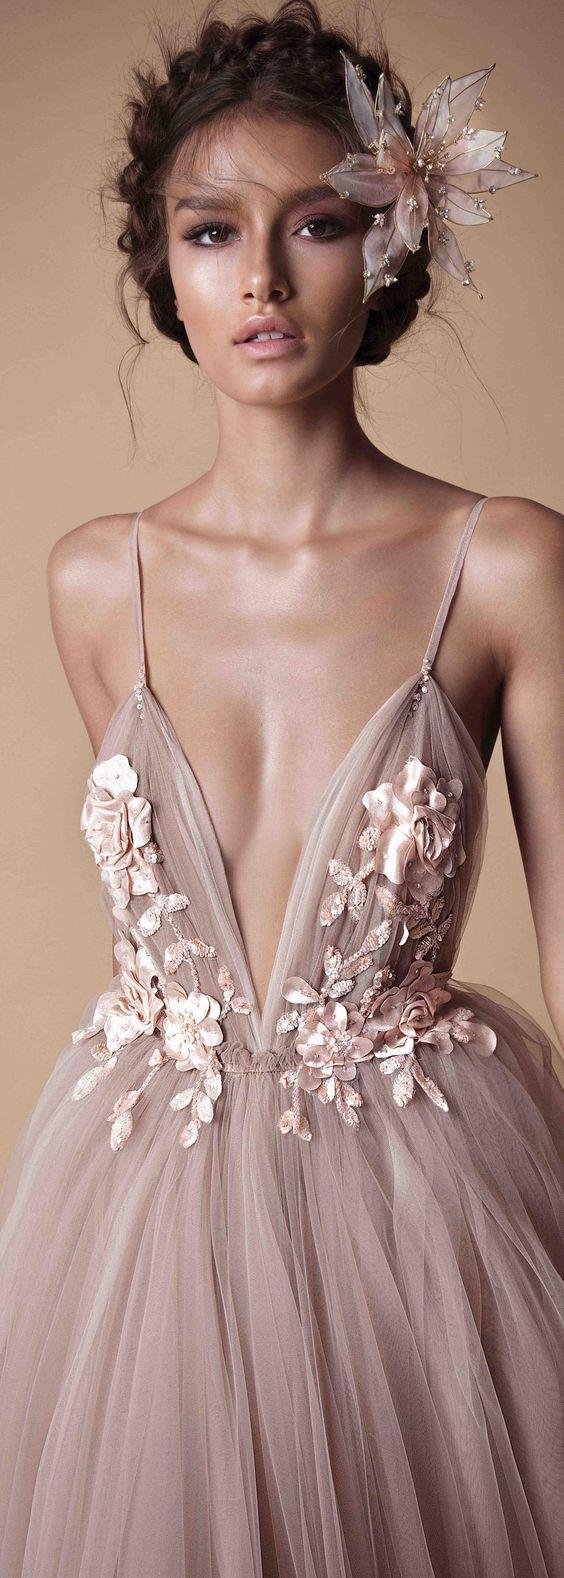 #Farbberatung #Stilberatung #Farbenreich mit www.farben-reich.com Beautiful gown blush color